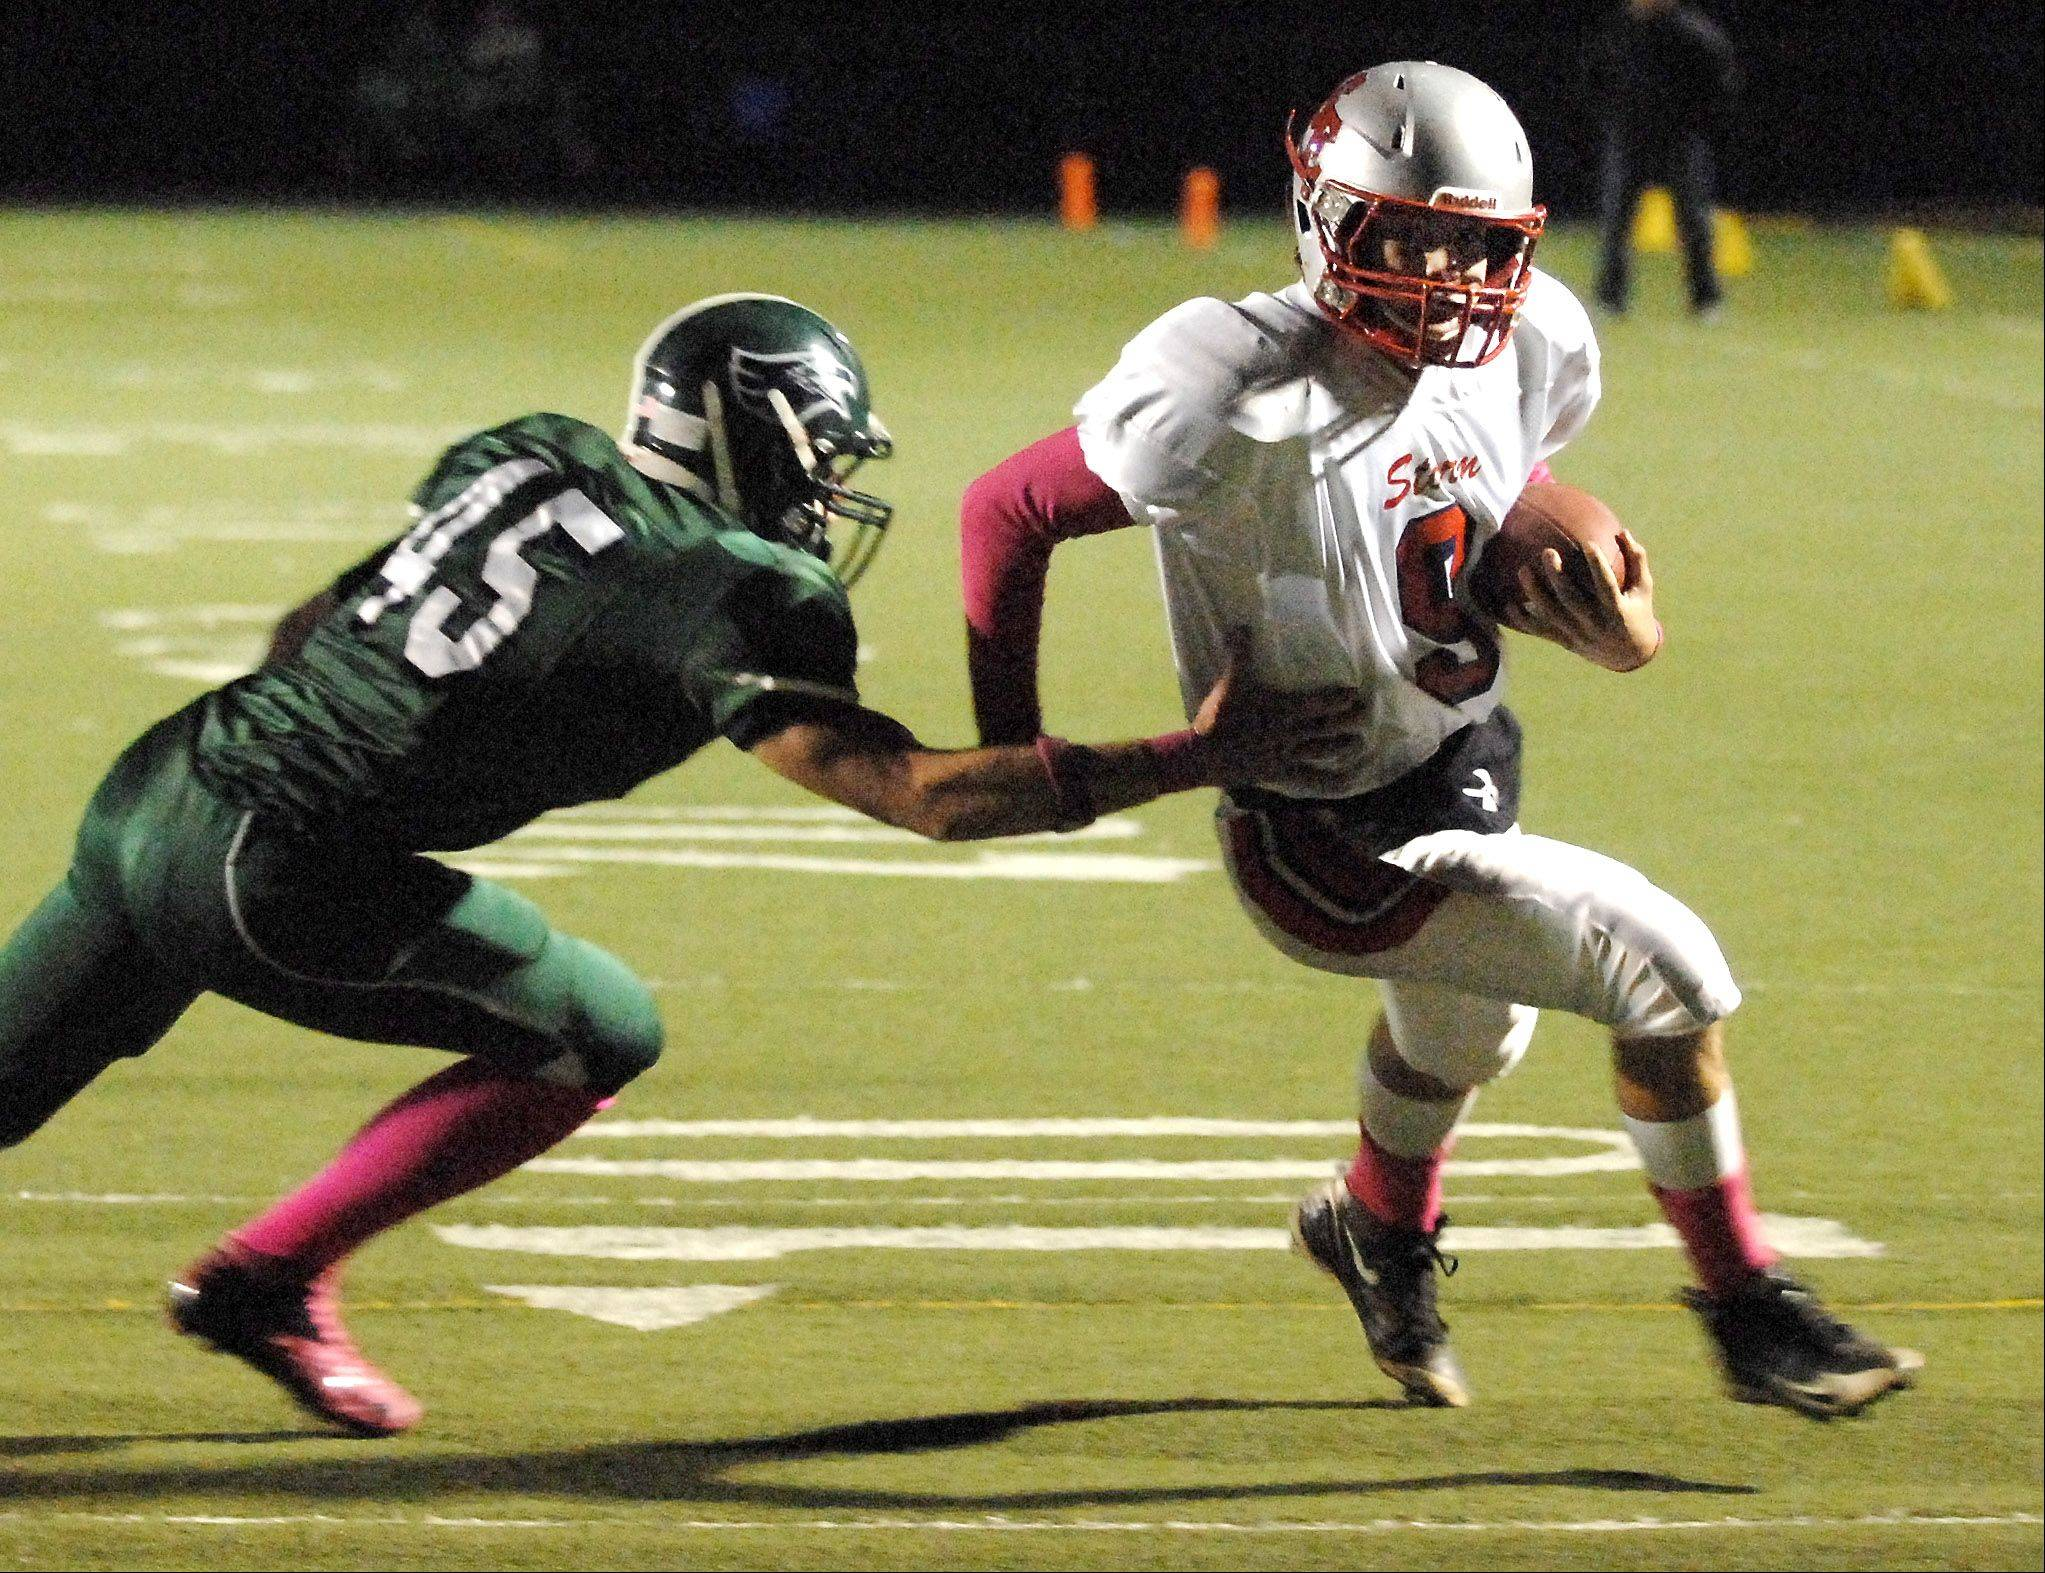 South Elgin's Robert Cuda gets past Bartlett's Chris Janssen en route to an 11-yard touchdown run.